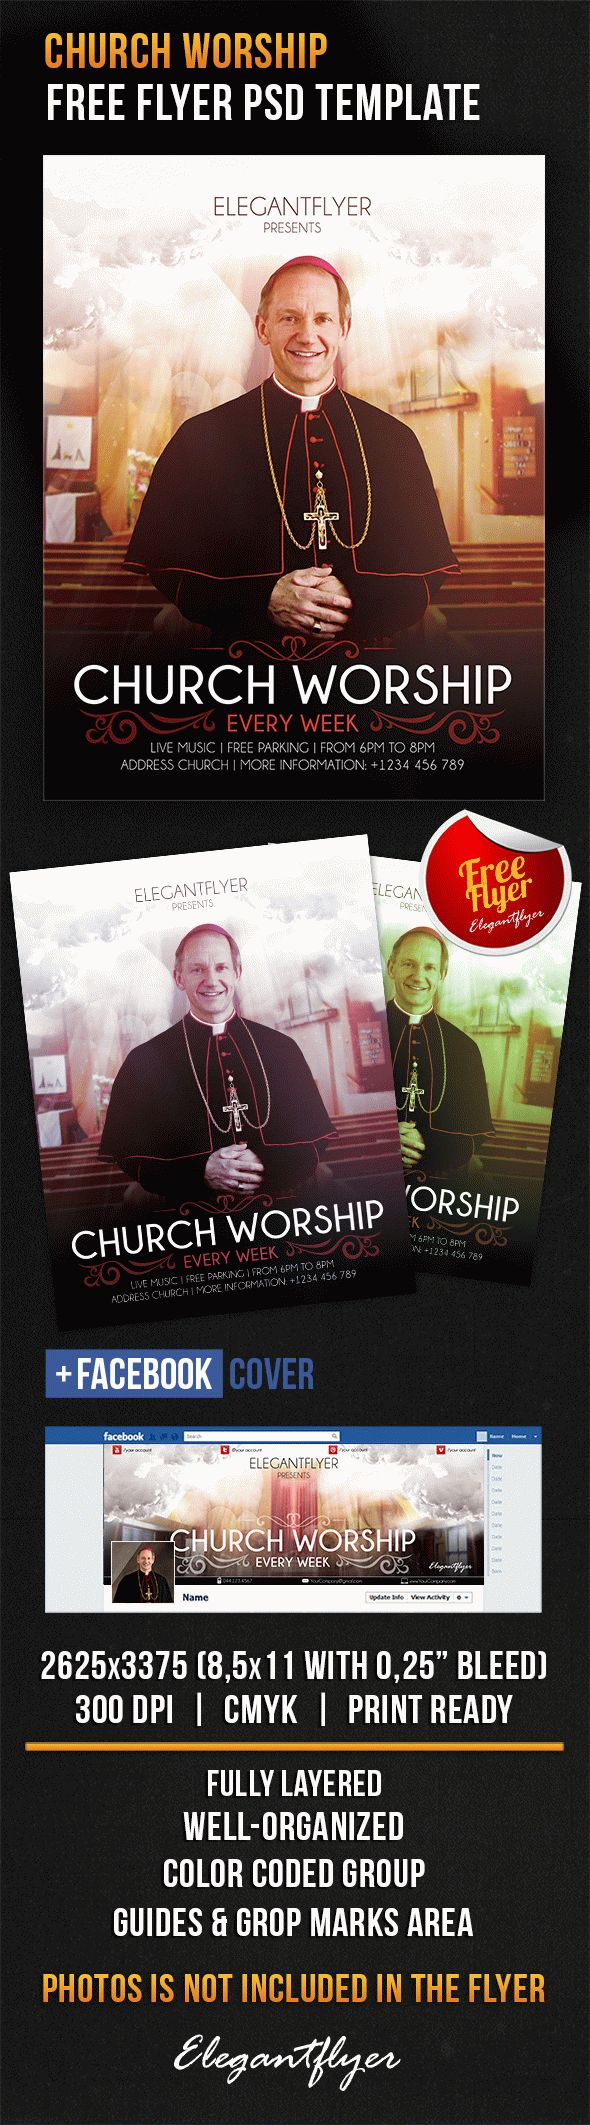 church worship flyer psd template facebook cover by church worship flyer psd template facebook cover